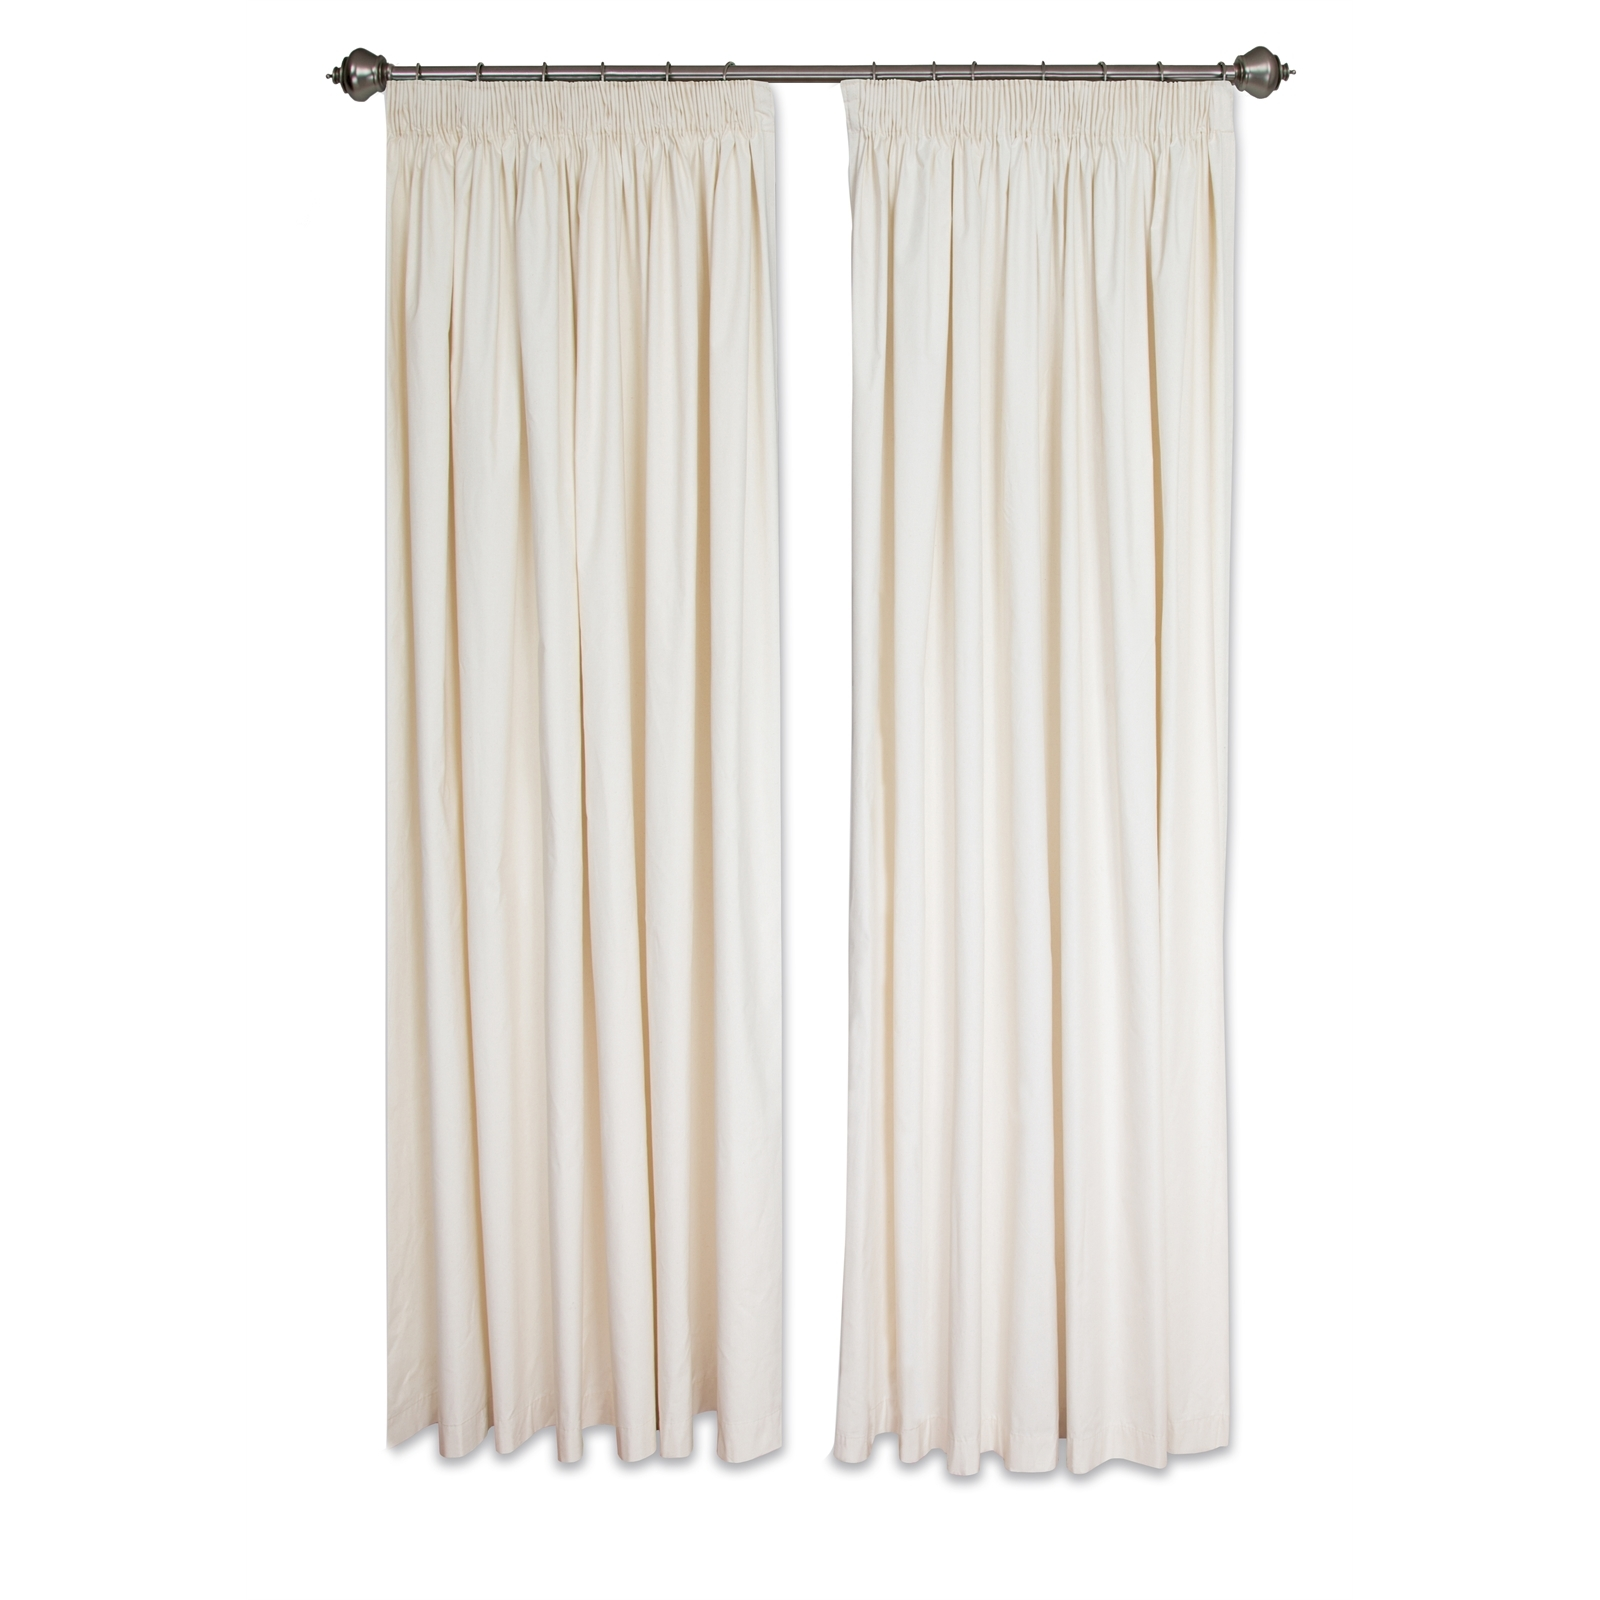 Homebase 2.3 - 3 x 2.05m Calico Thermal Curtain